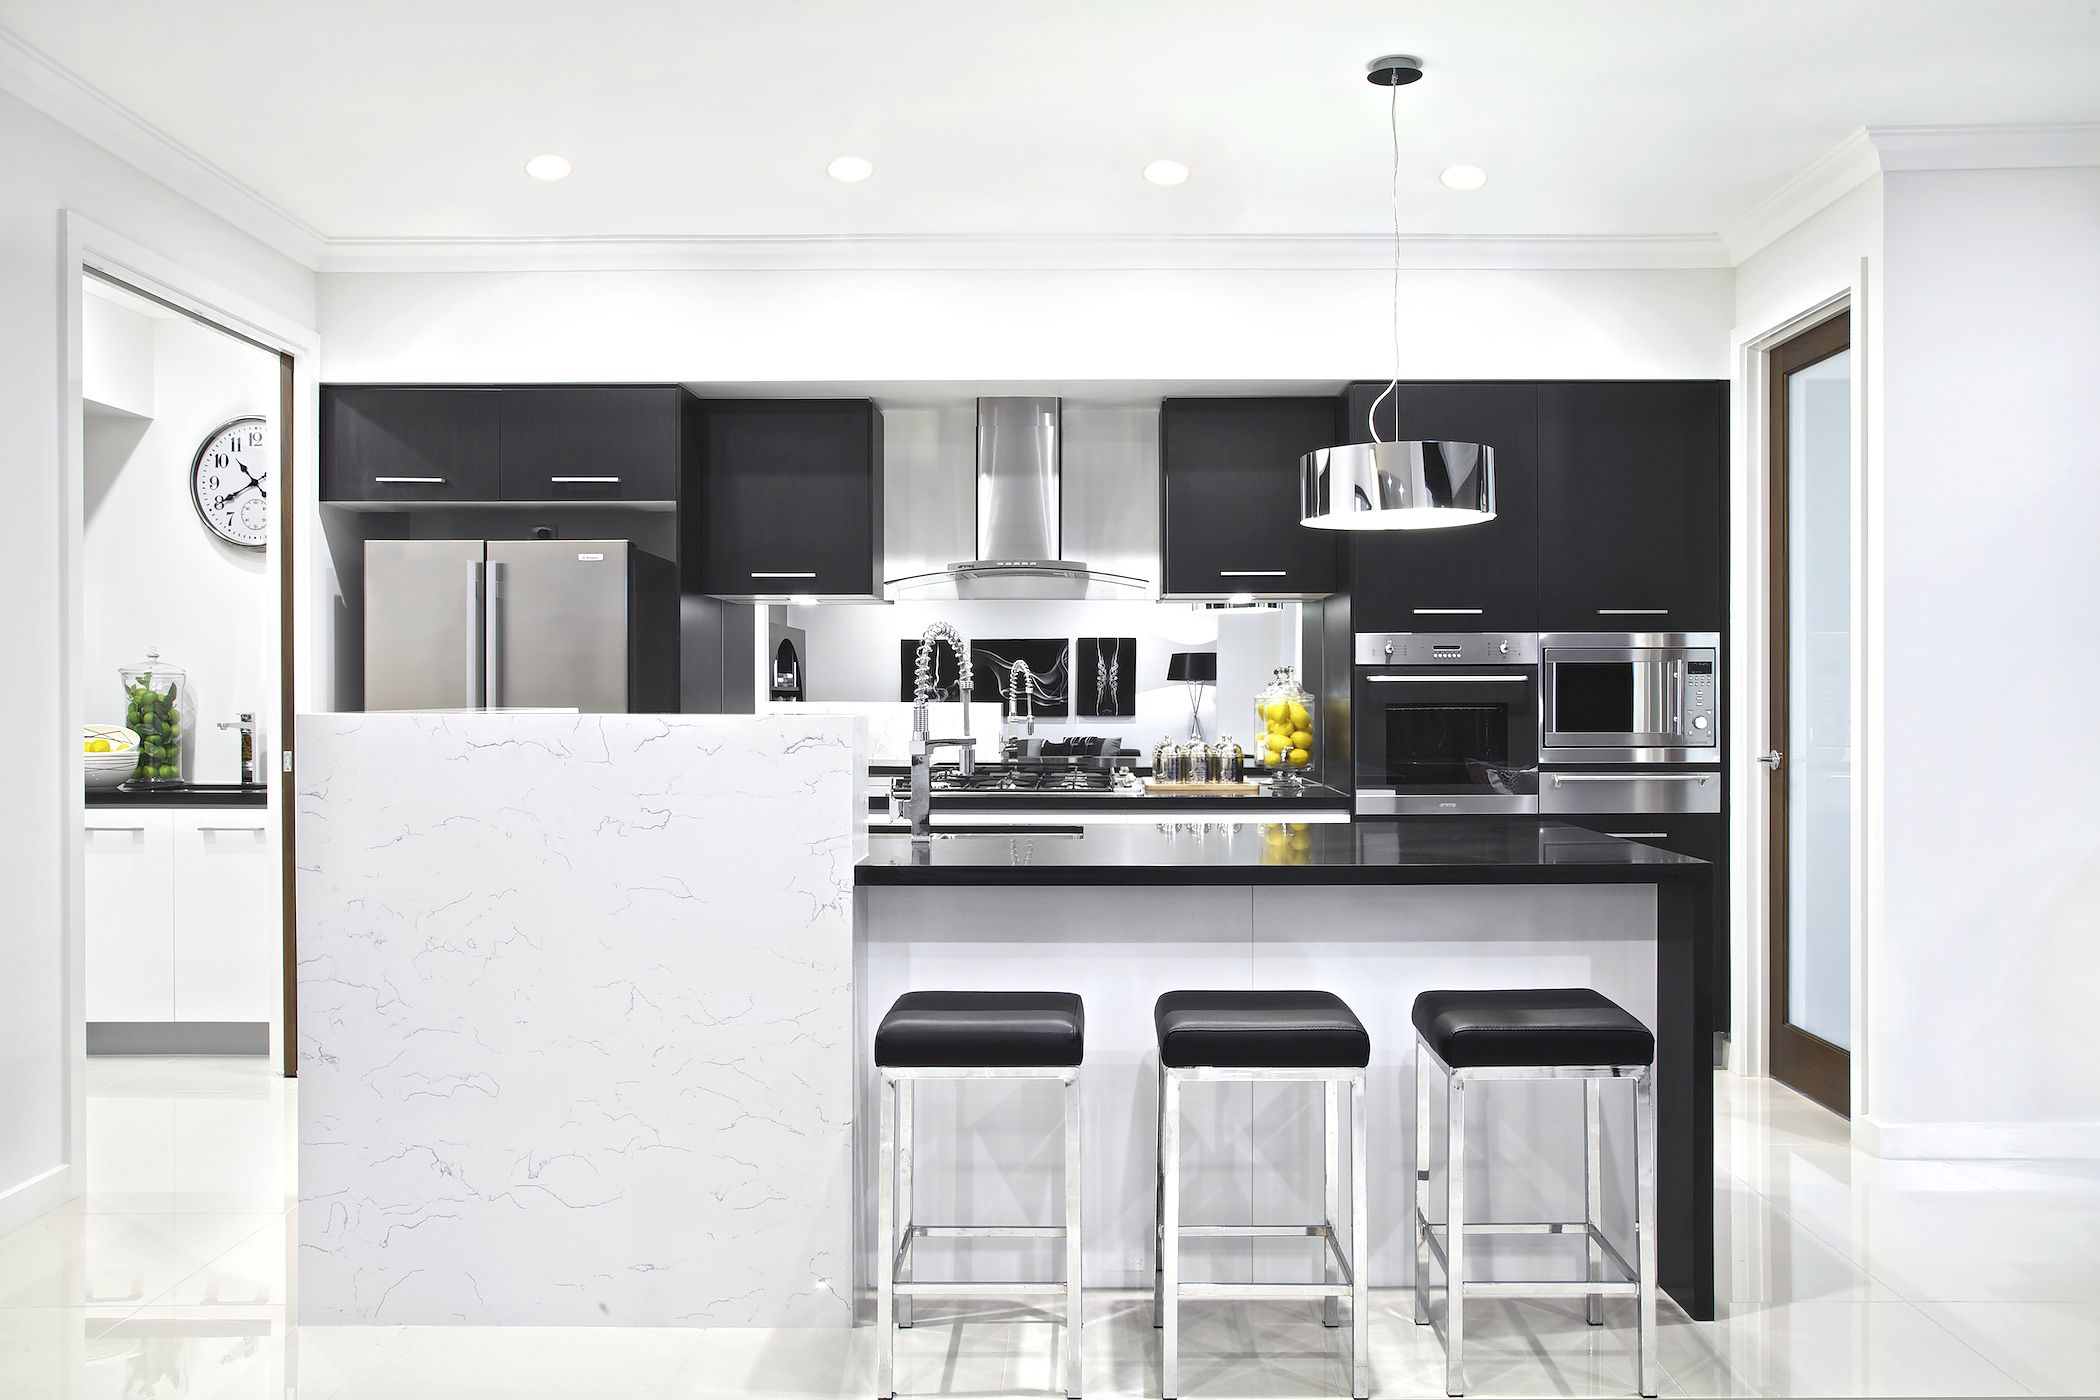 Classic Black And White Kitchen Clarendon Homescrestmead 46Classic Black & White Kitchen And